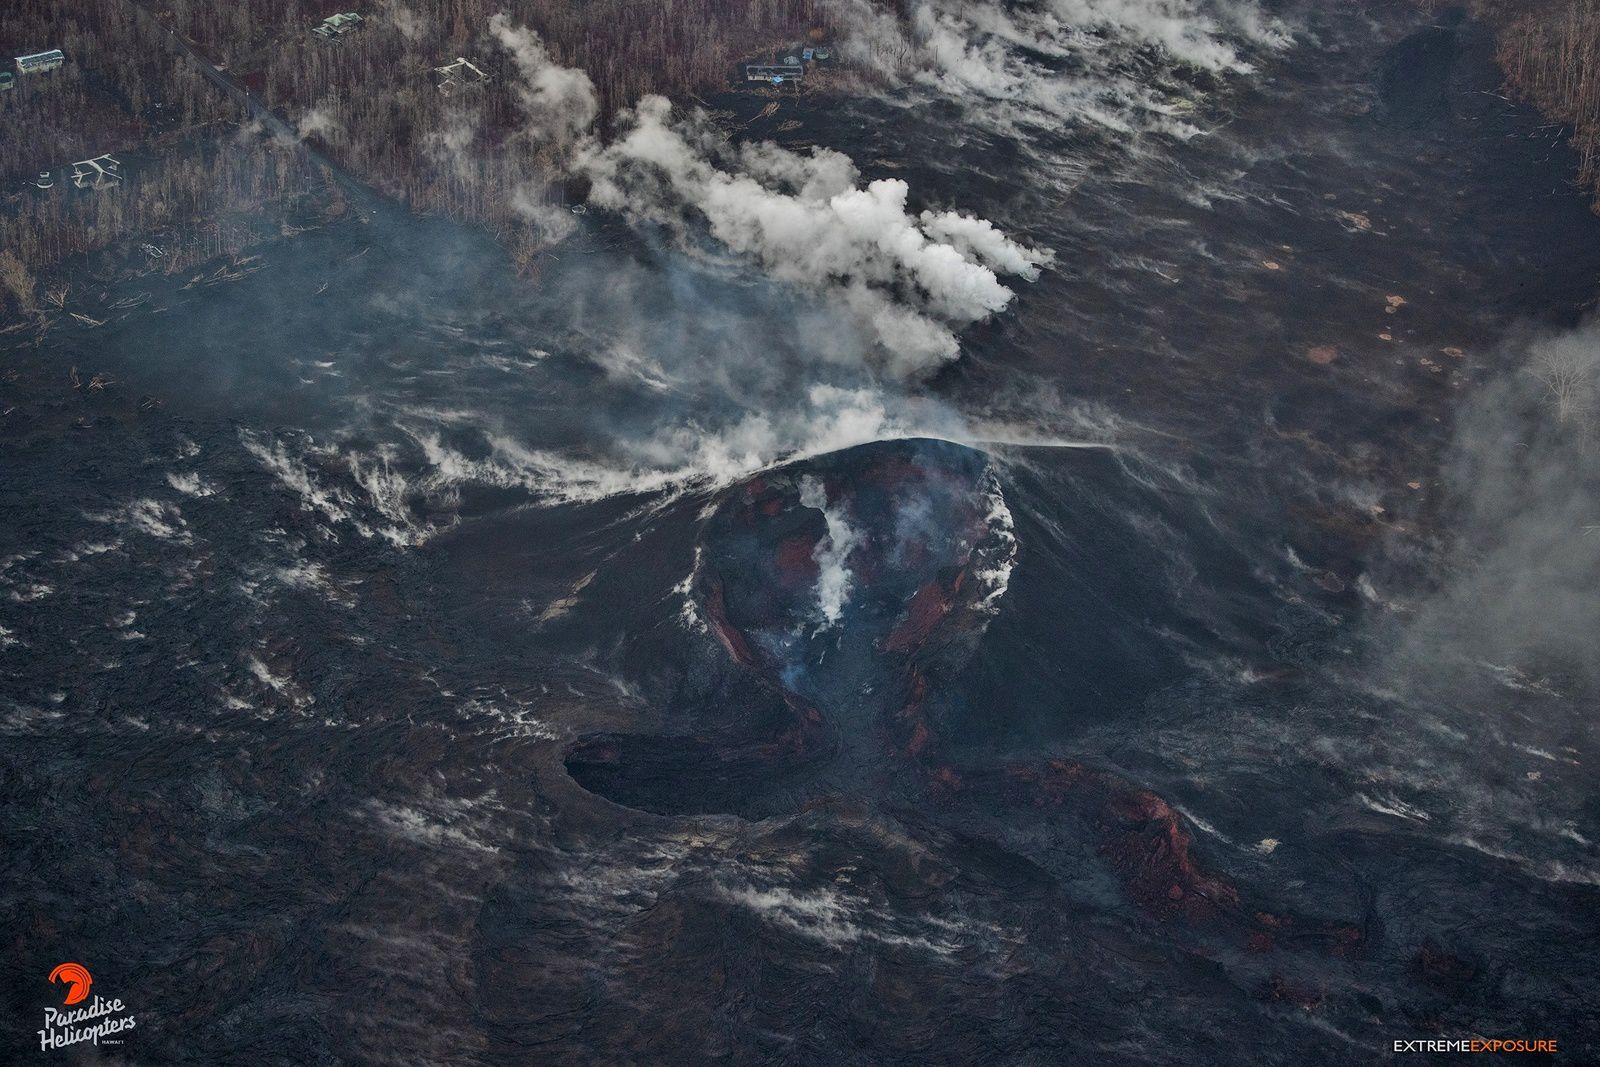 The cone on fissure8 has no glow since 25.08, but still emits vapors - photos Bruce Omoro 29.08.2018